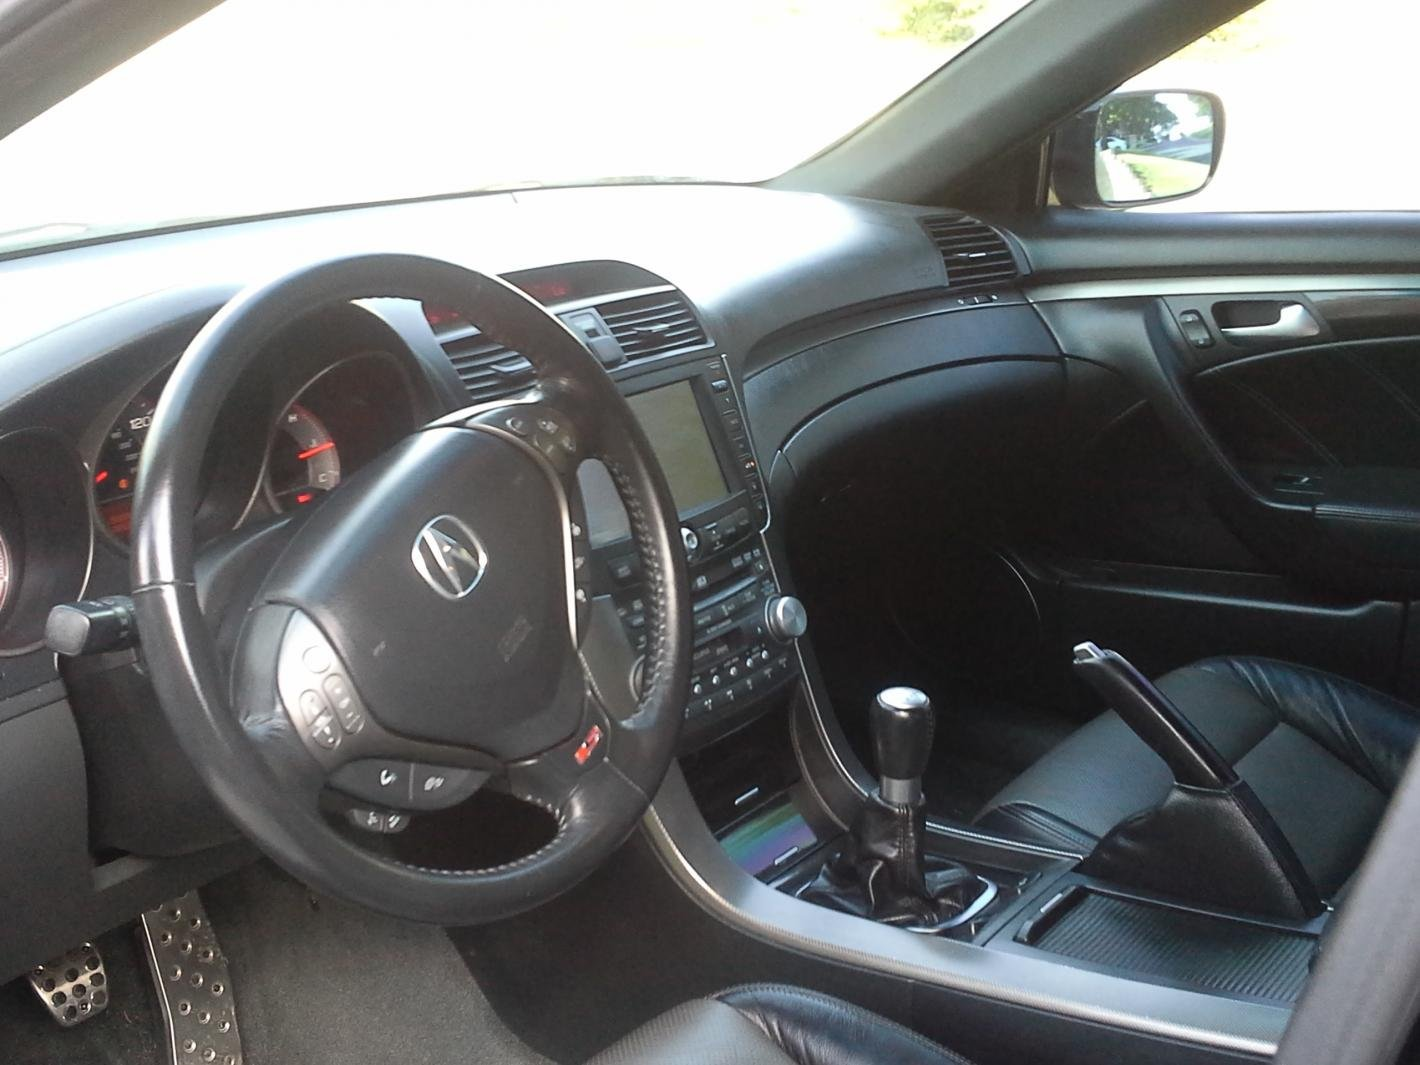 2008 TL TypeS 6 speed manual  Acura Forum  Acura Forums